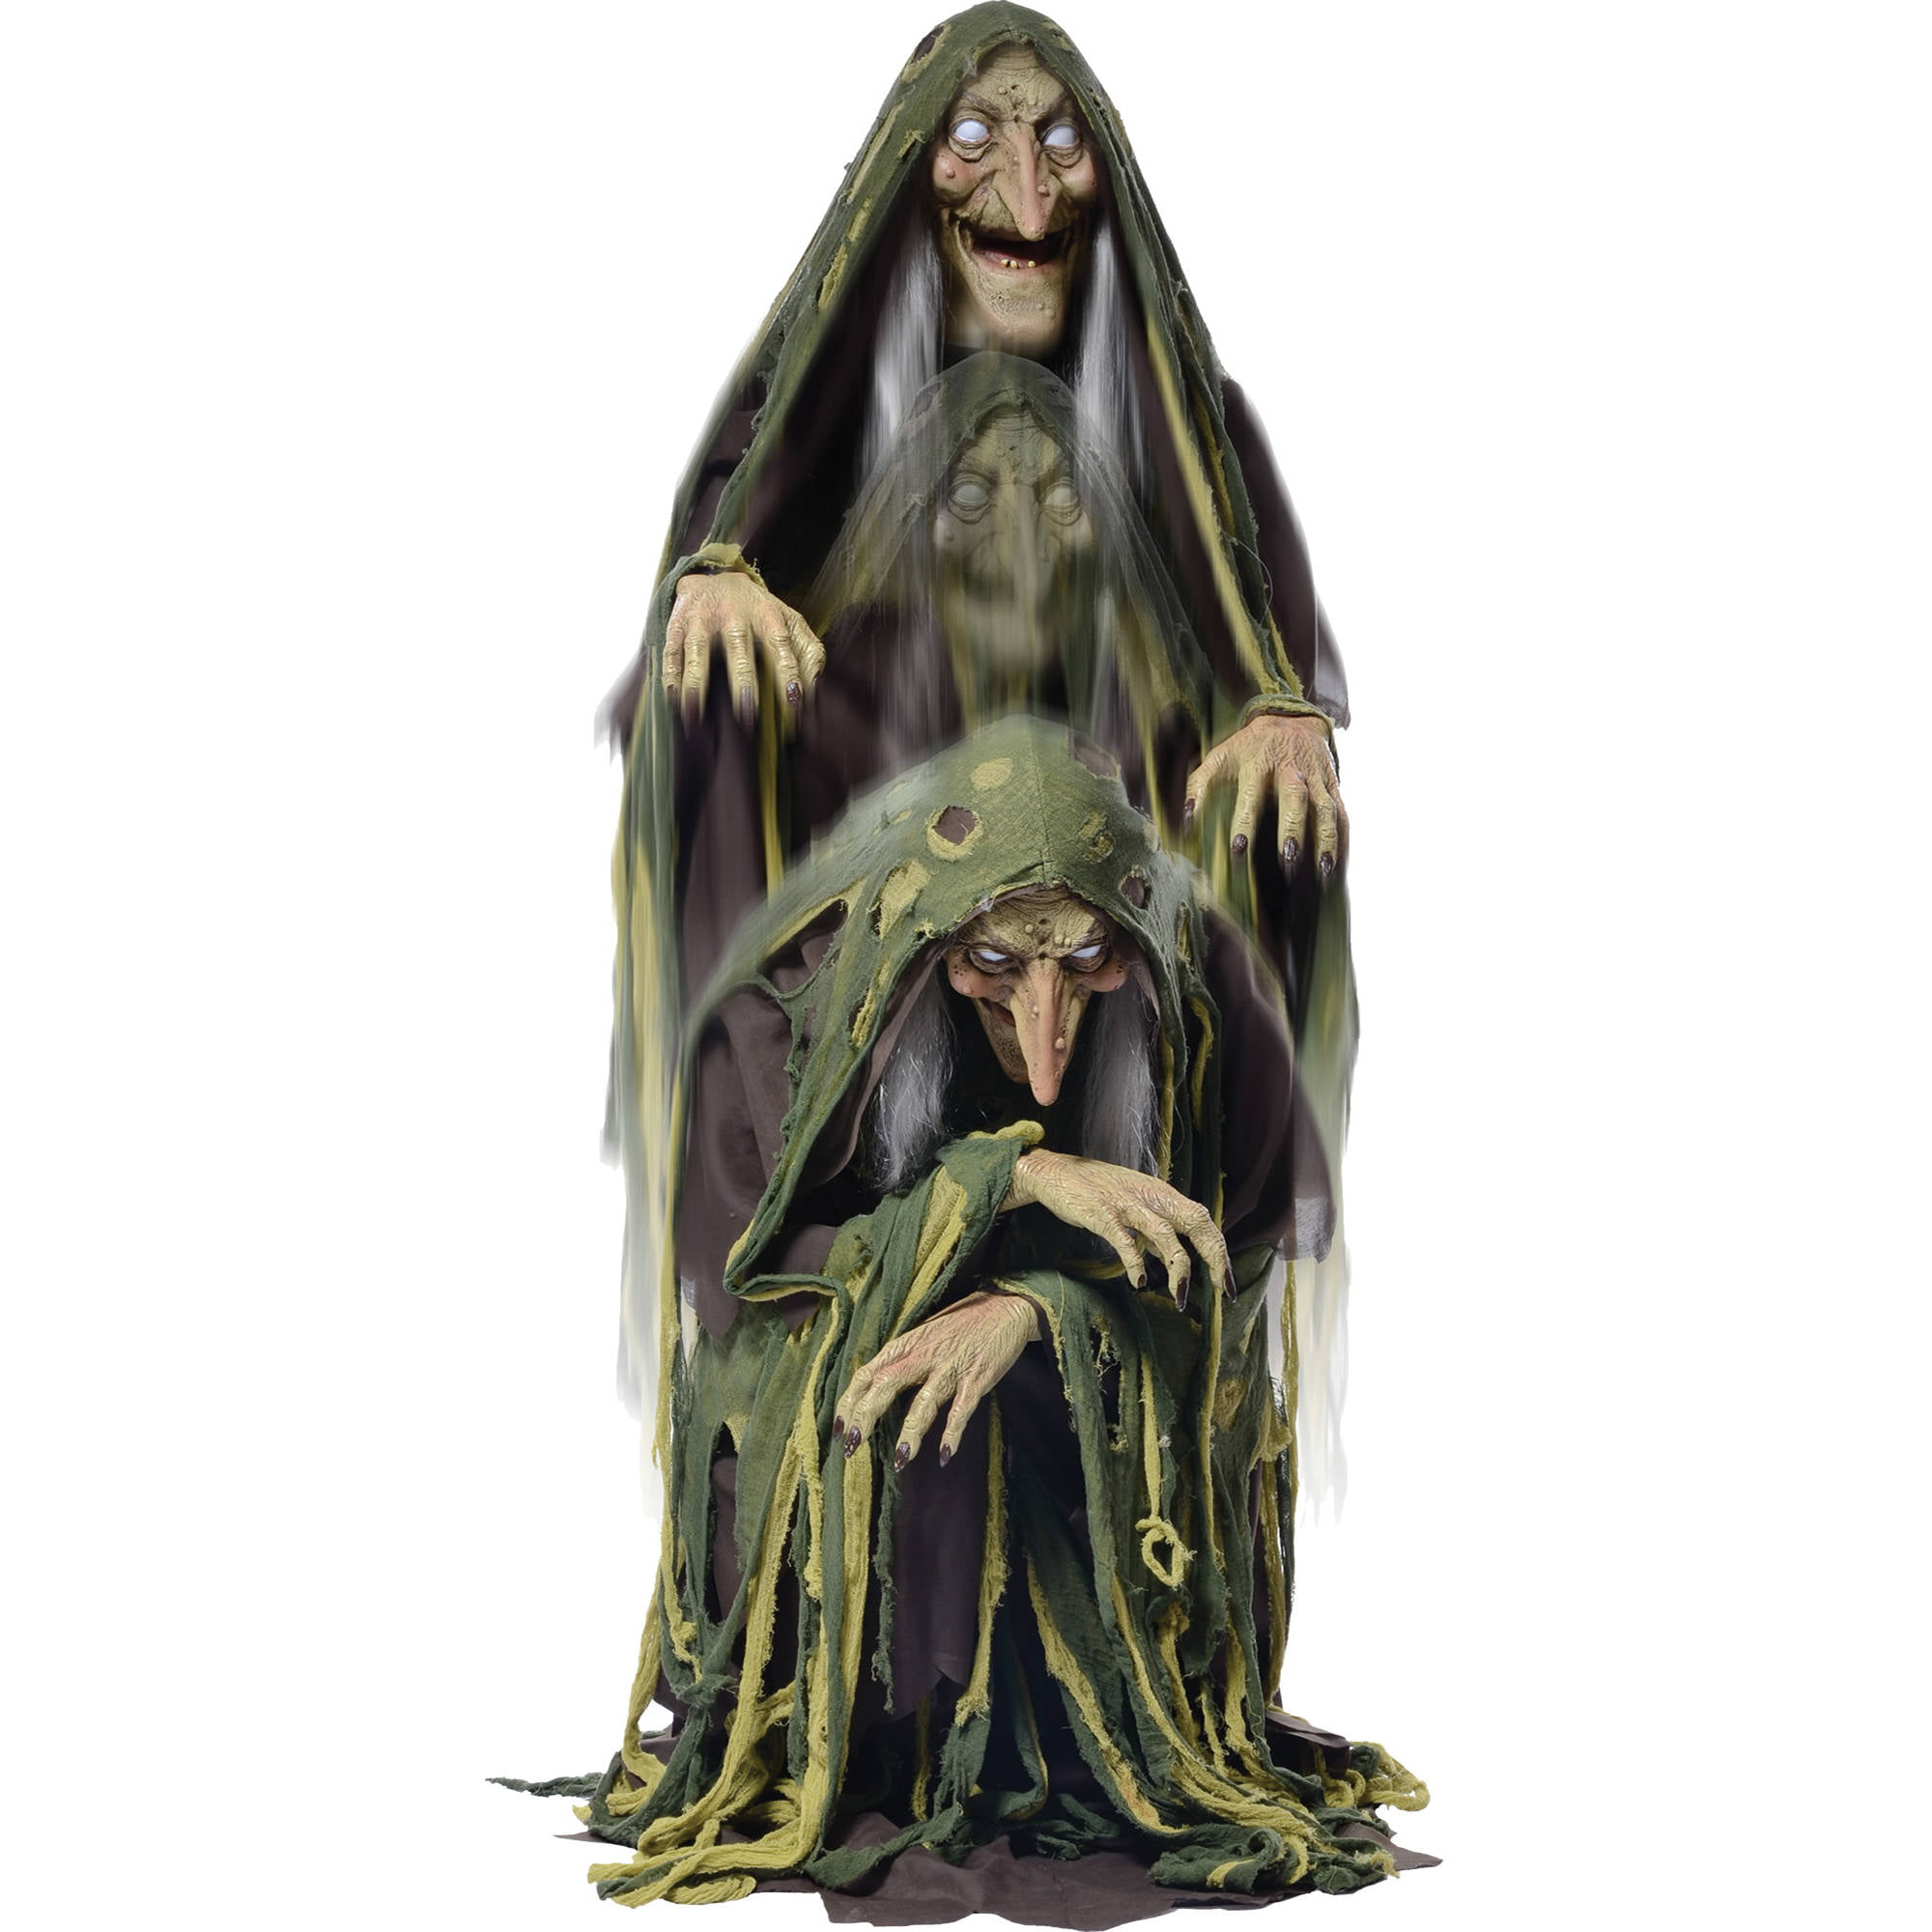 swamp hag rising animated halloween decoration walmartcom - Animated Halloween Decorations